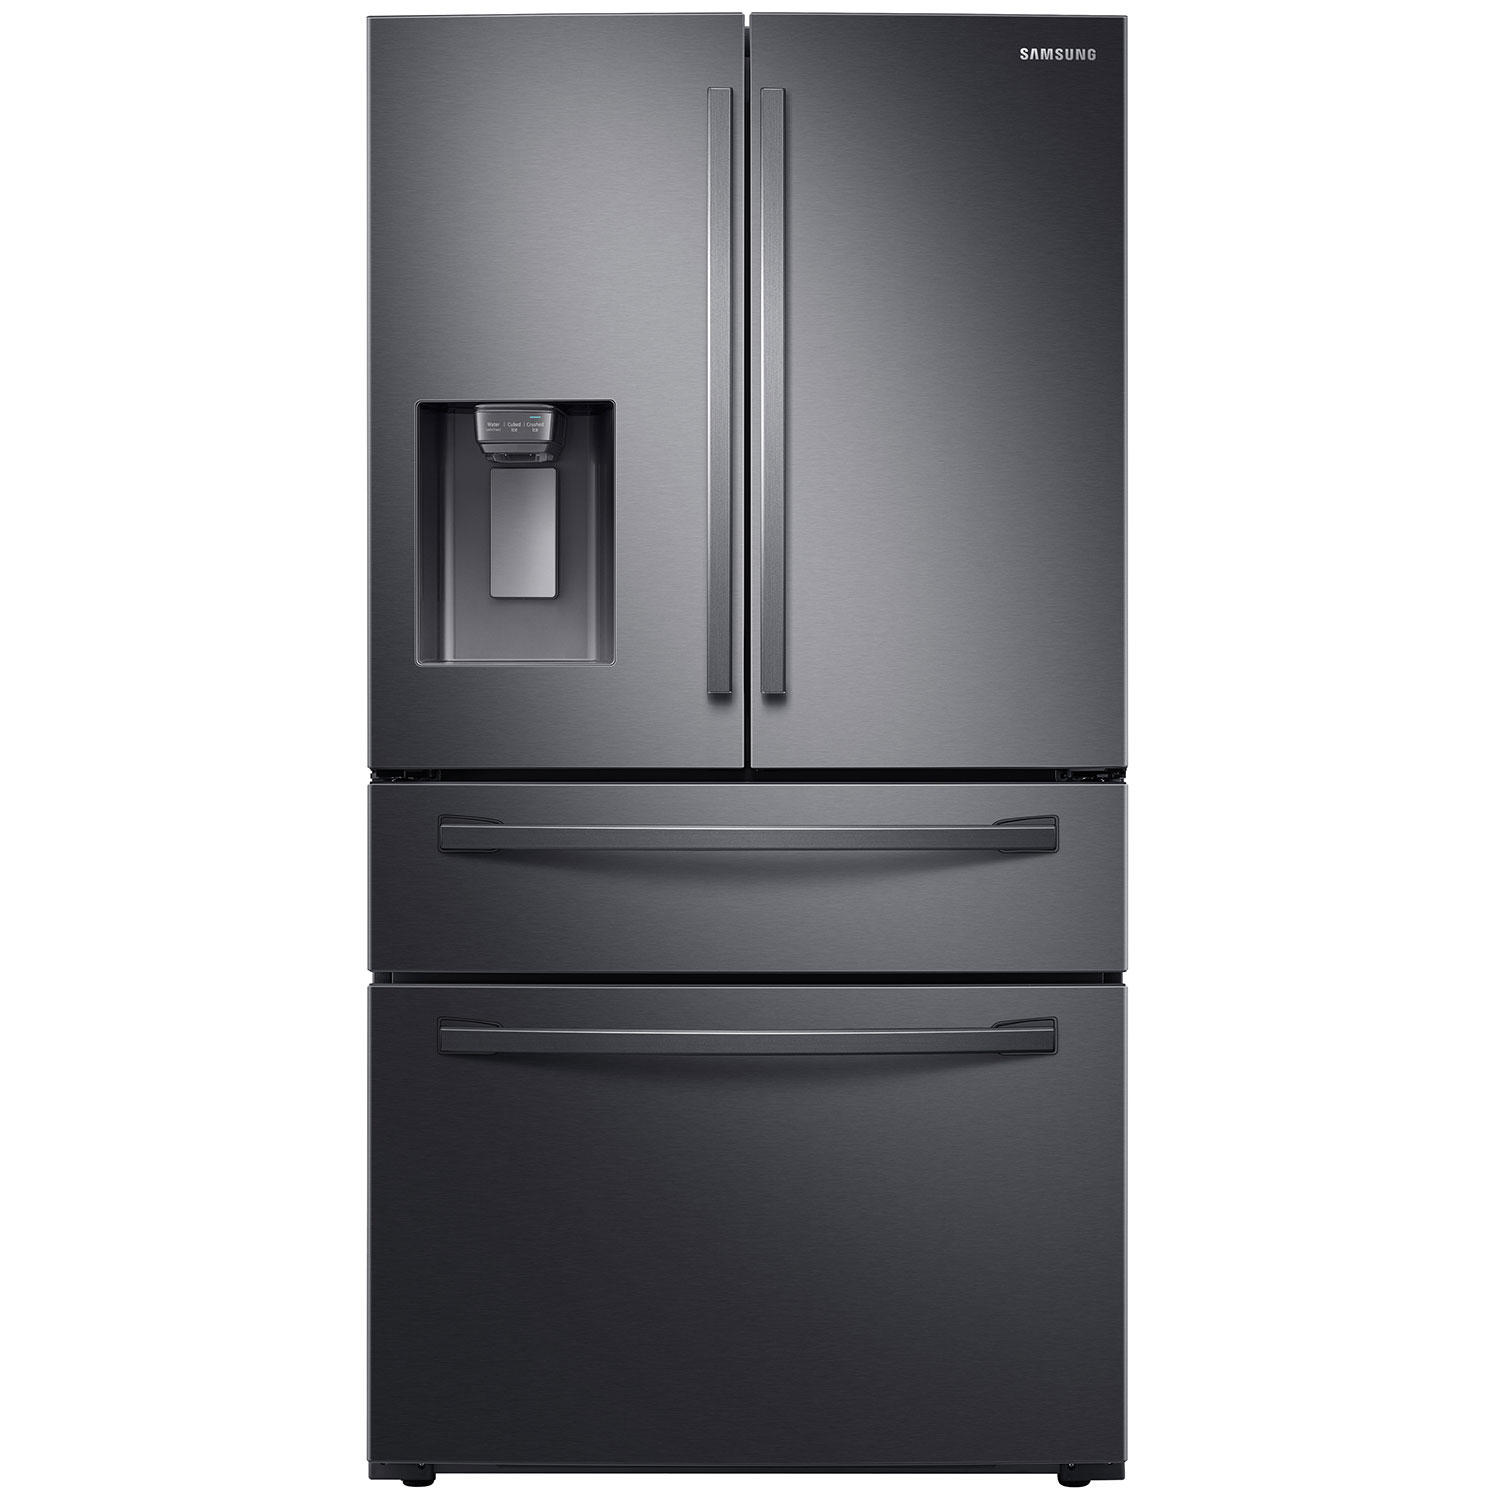 Samsung 28-Cu. Ft. 4-Door French Door Stainless Steel Refrigerator